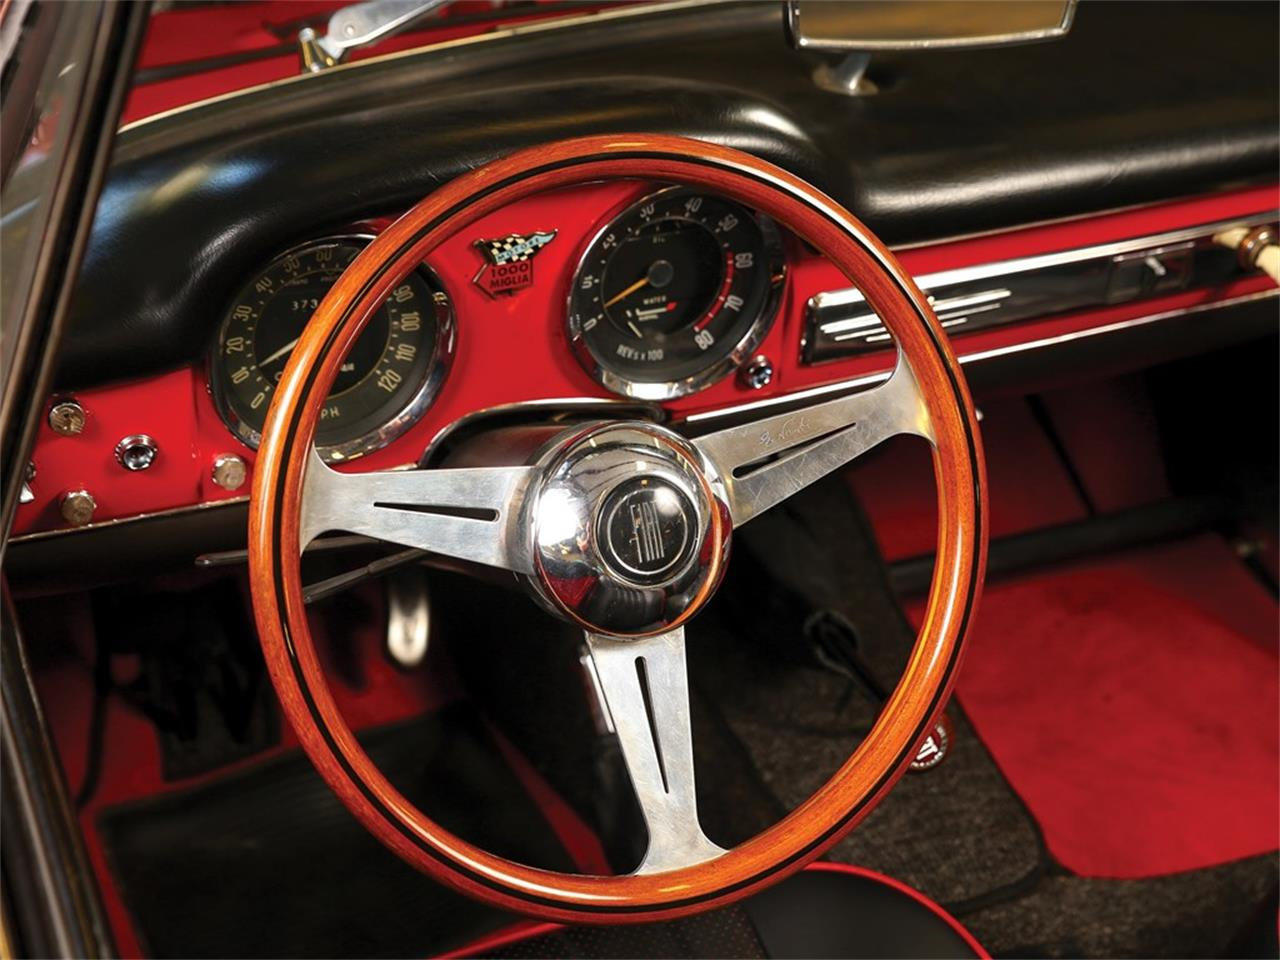 1965 Fiat Abarth 1500 for sale in Fort Lauderdale, FL – photo 11